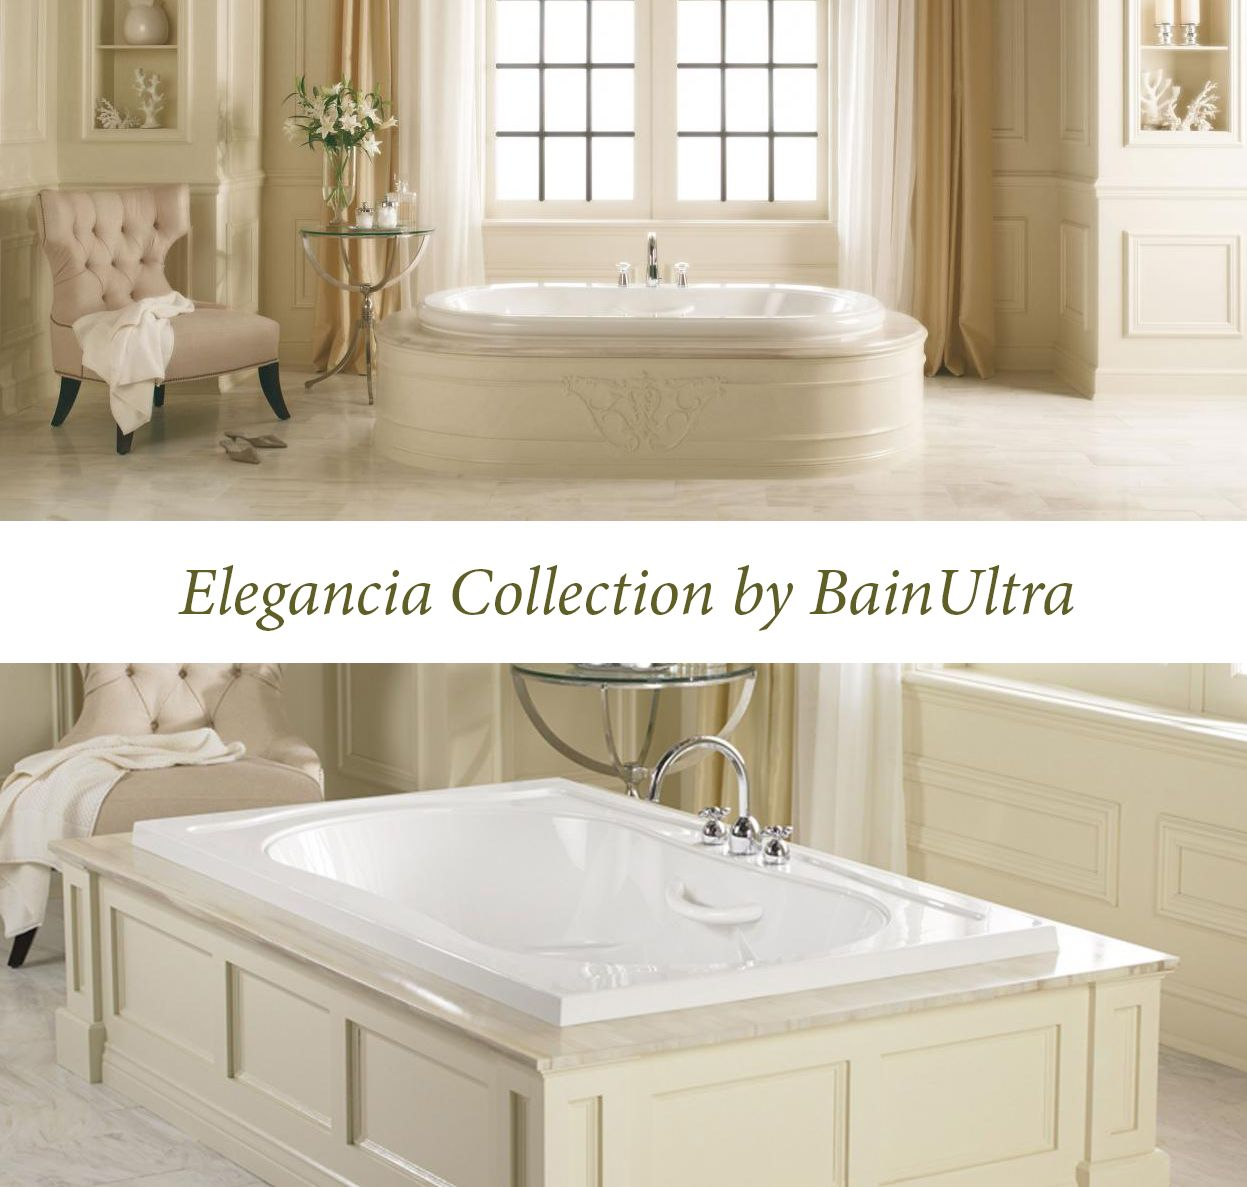 The Elegancia #Therapeutic #Bathtubs Collection By #BainUltra Http://www.